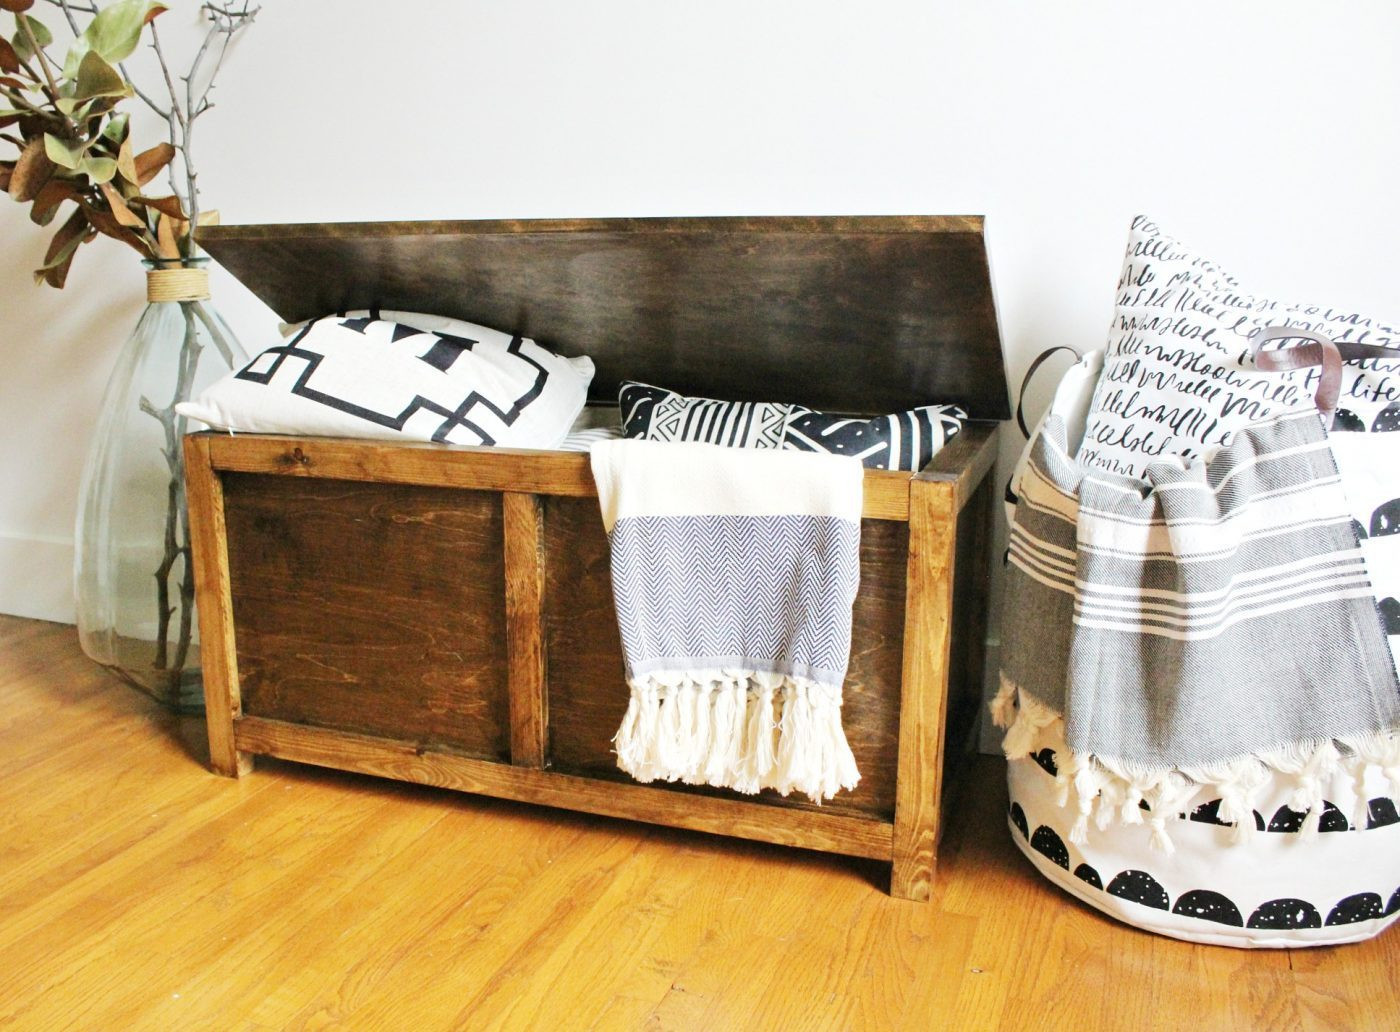 Best ideas about DIY Storage Chest . Save or Pin How to Build a Simple DIY Storage Chest Now.